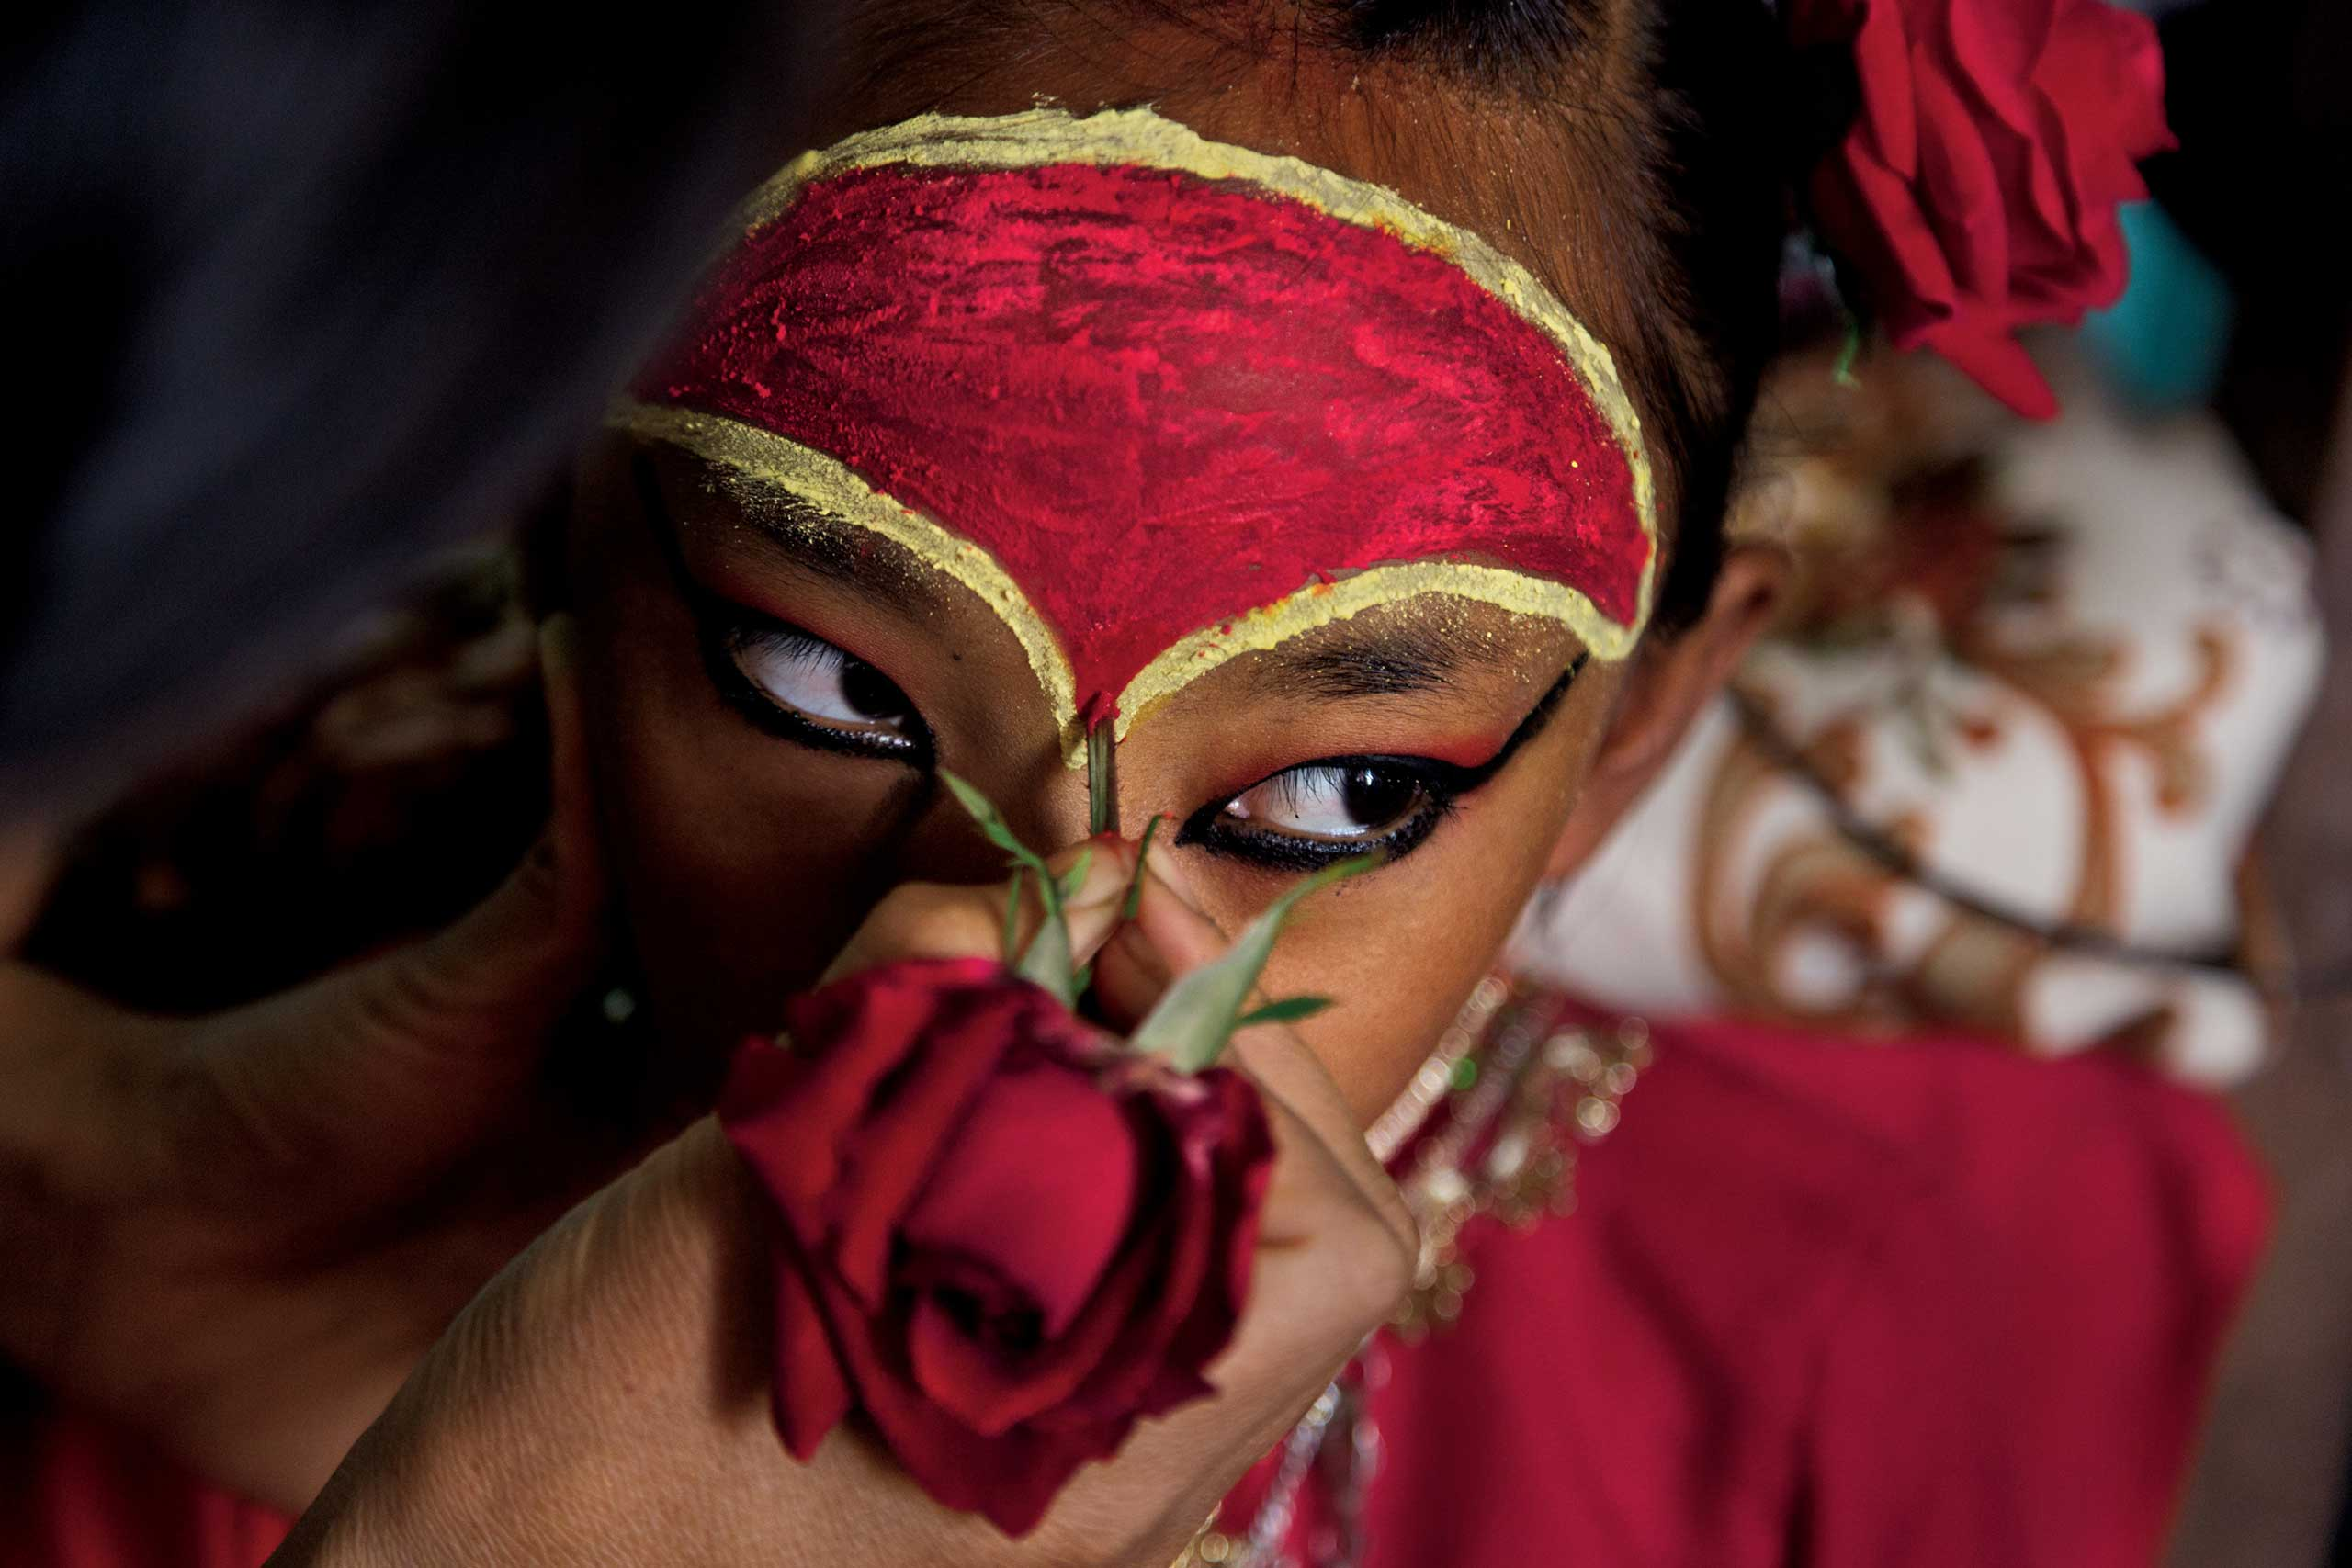 From the June  issue of National Geographic magazine: Living Goddesses of Nepal                               The Kumari of Tokha, nine-year-old Dangol, became a living goddess as an infant. A kumari's eyes are believed to draw the beholder into direct contact with the divine. For religious festivals her forehead is painted red, a sign of creative energy.